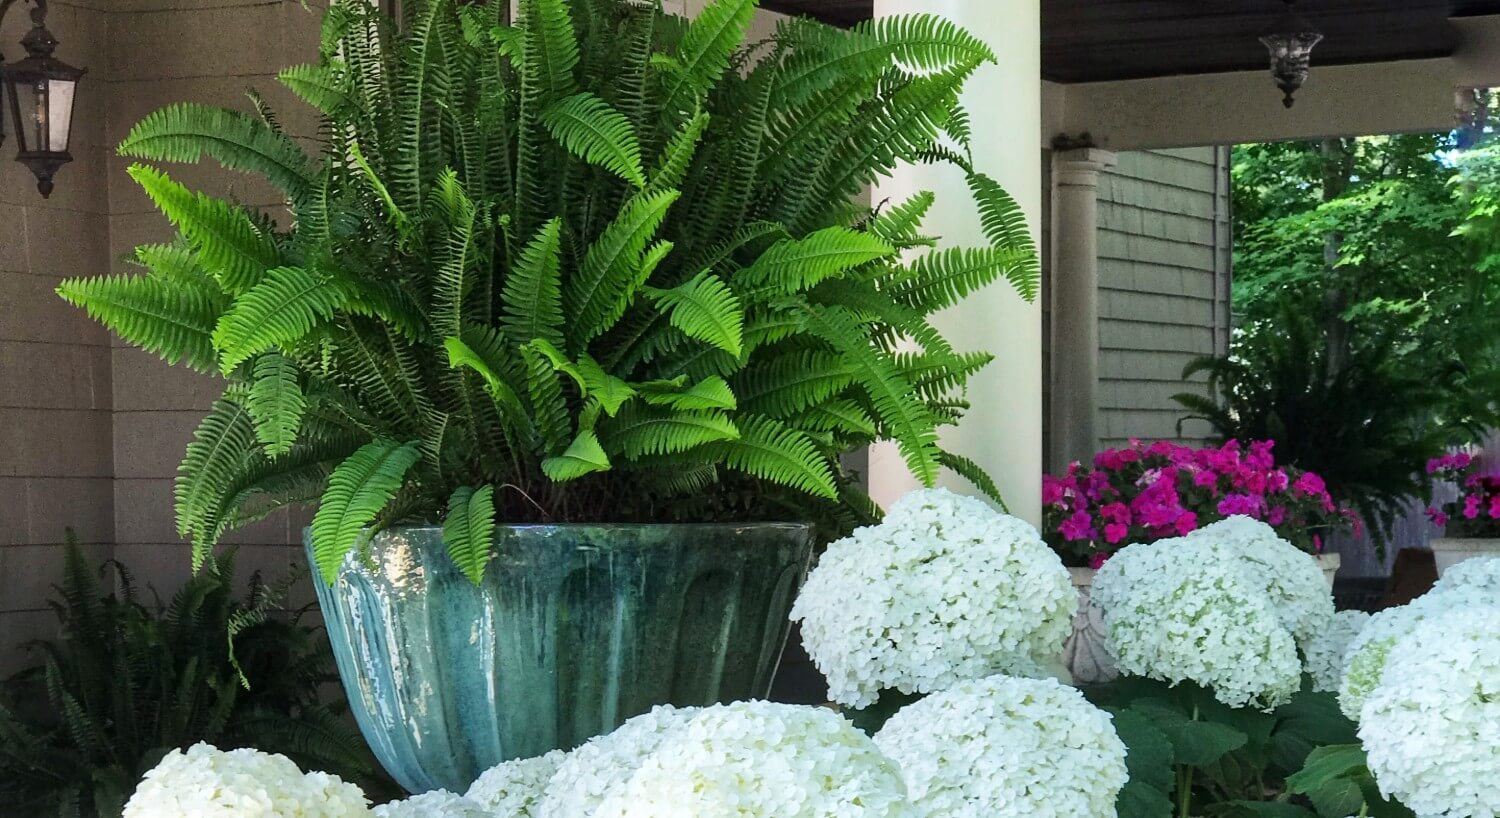 Large green fern in a teal vase next to lush white hydrangea flowers on a porch